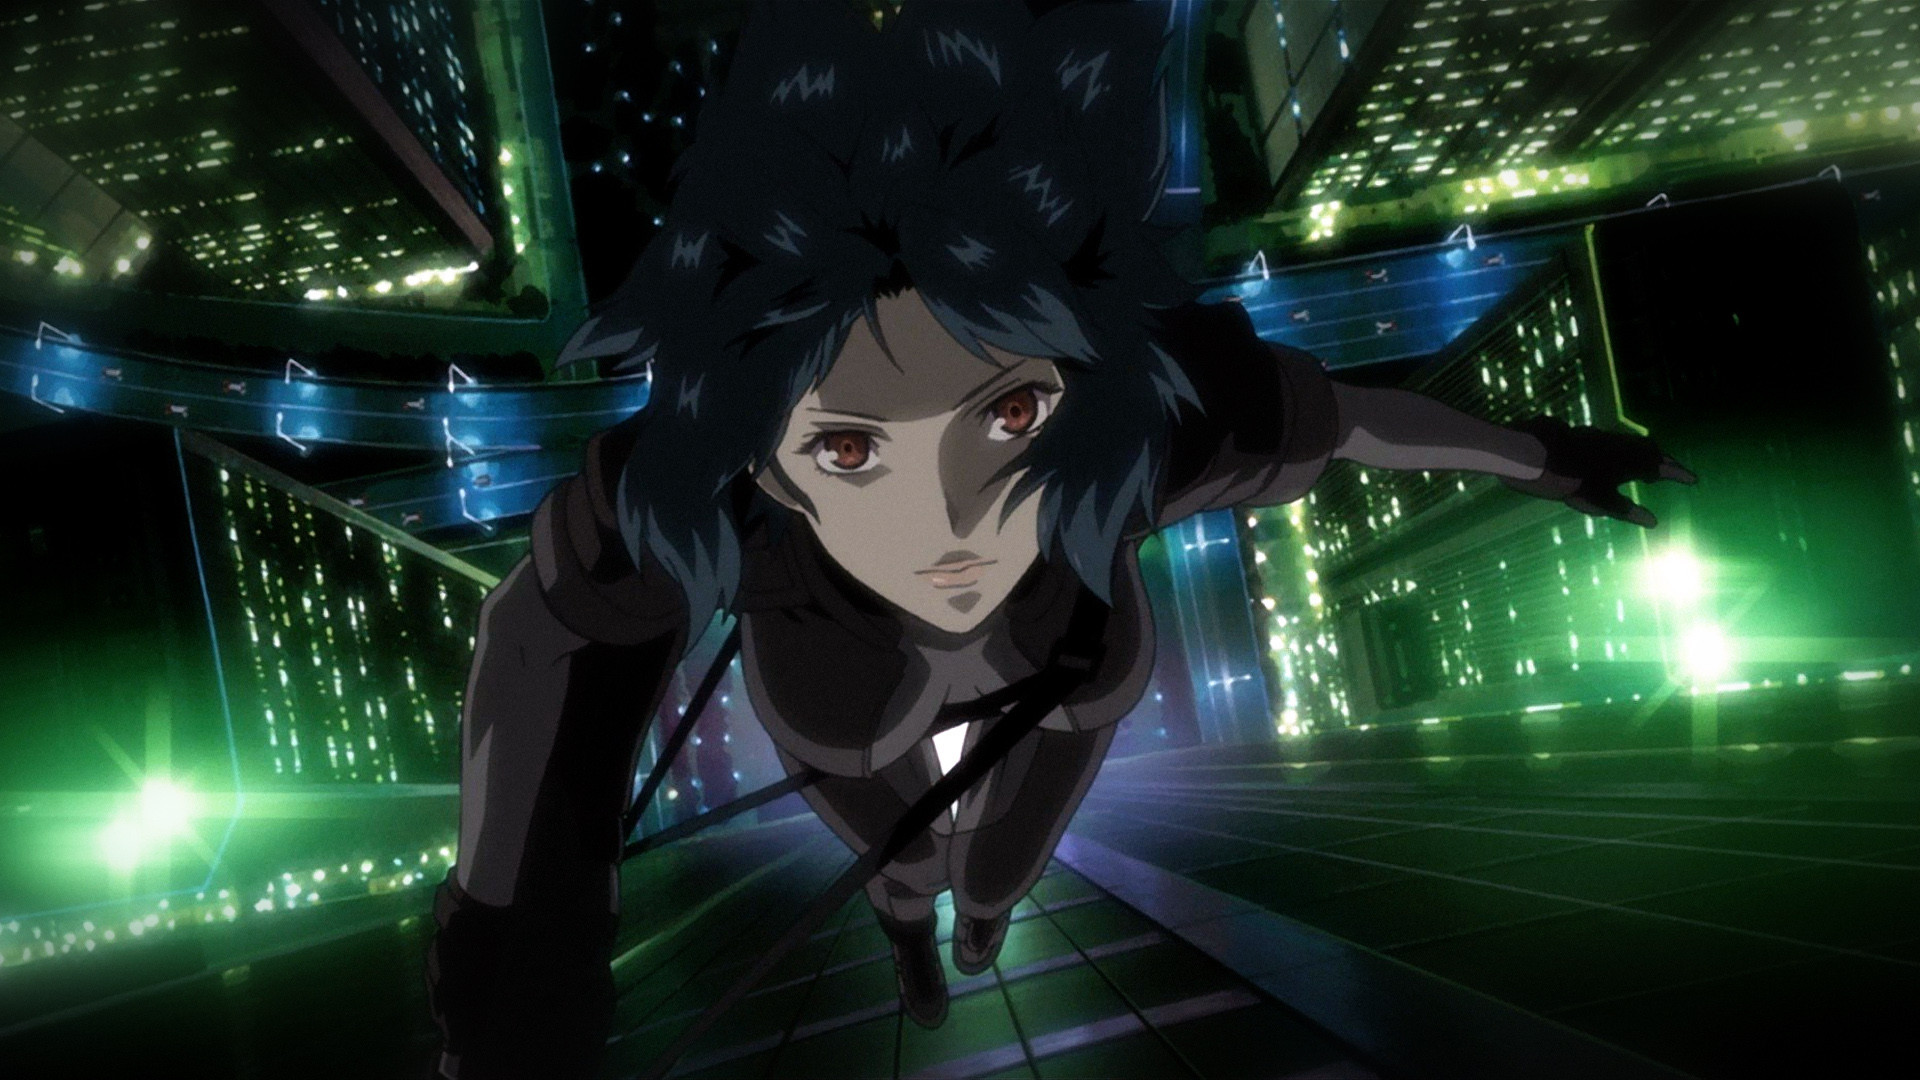 Motoko Kusanagi major Anime